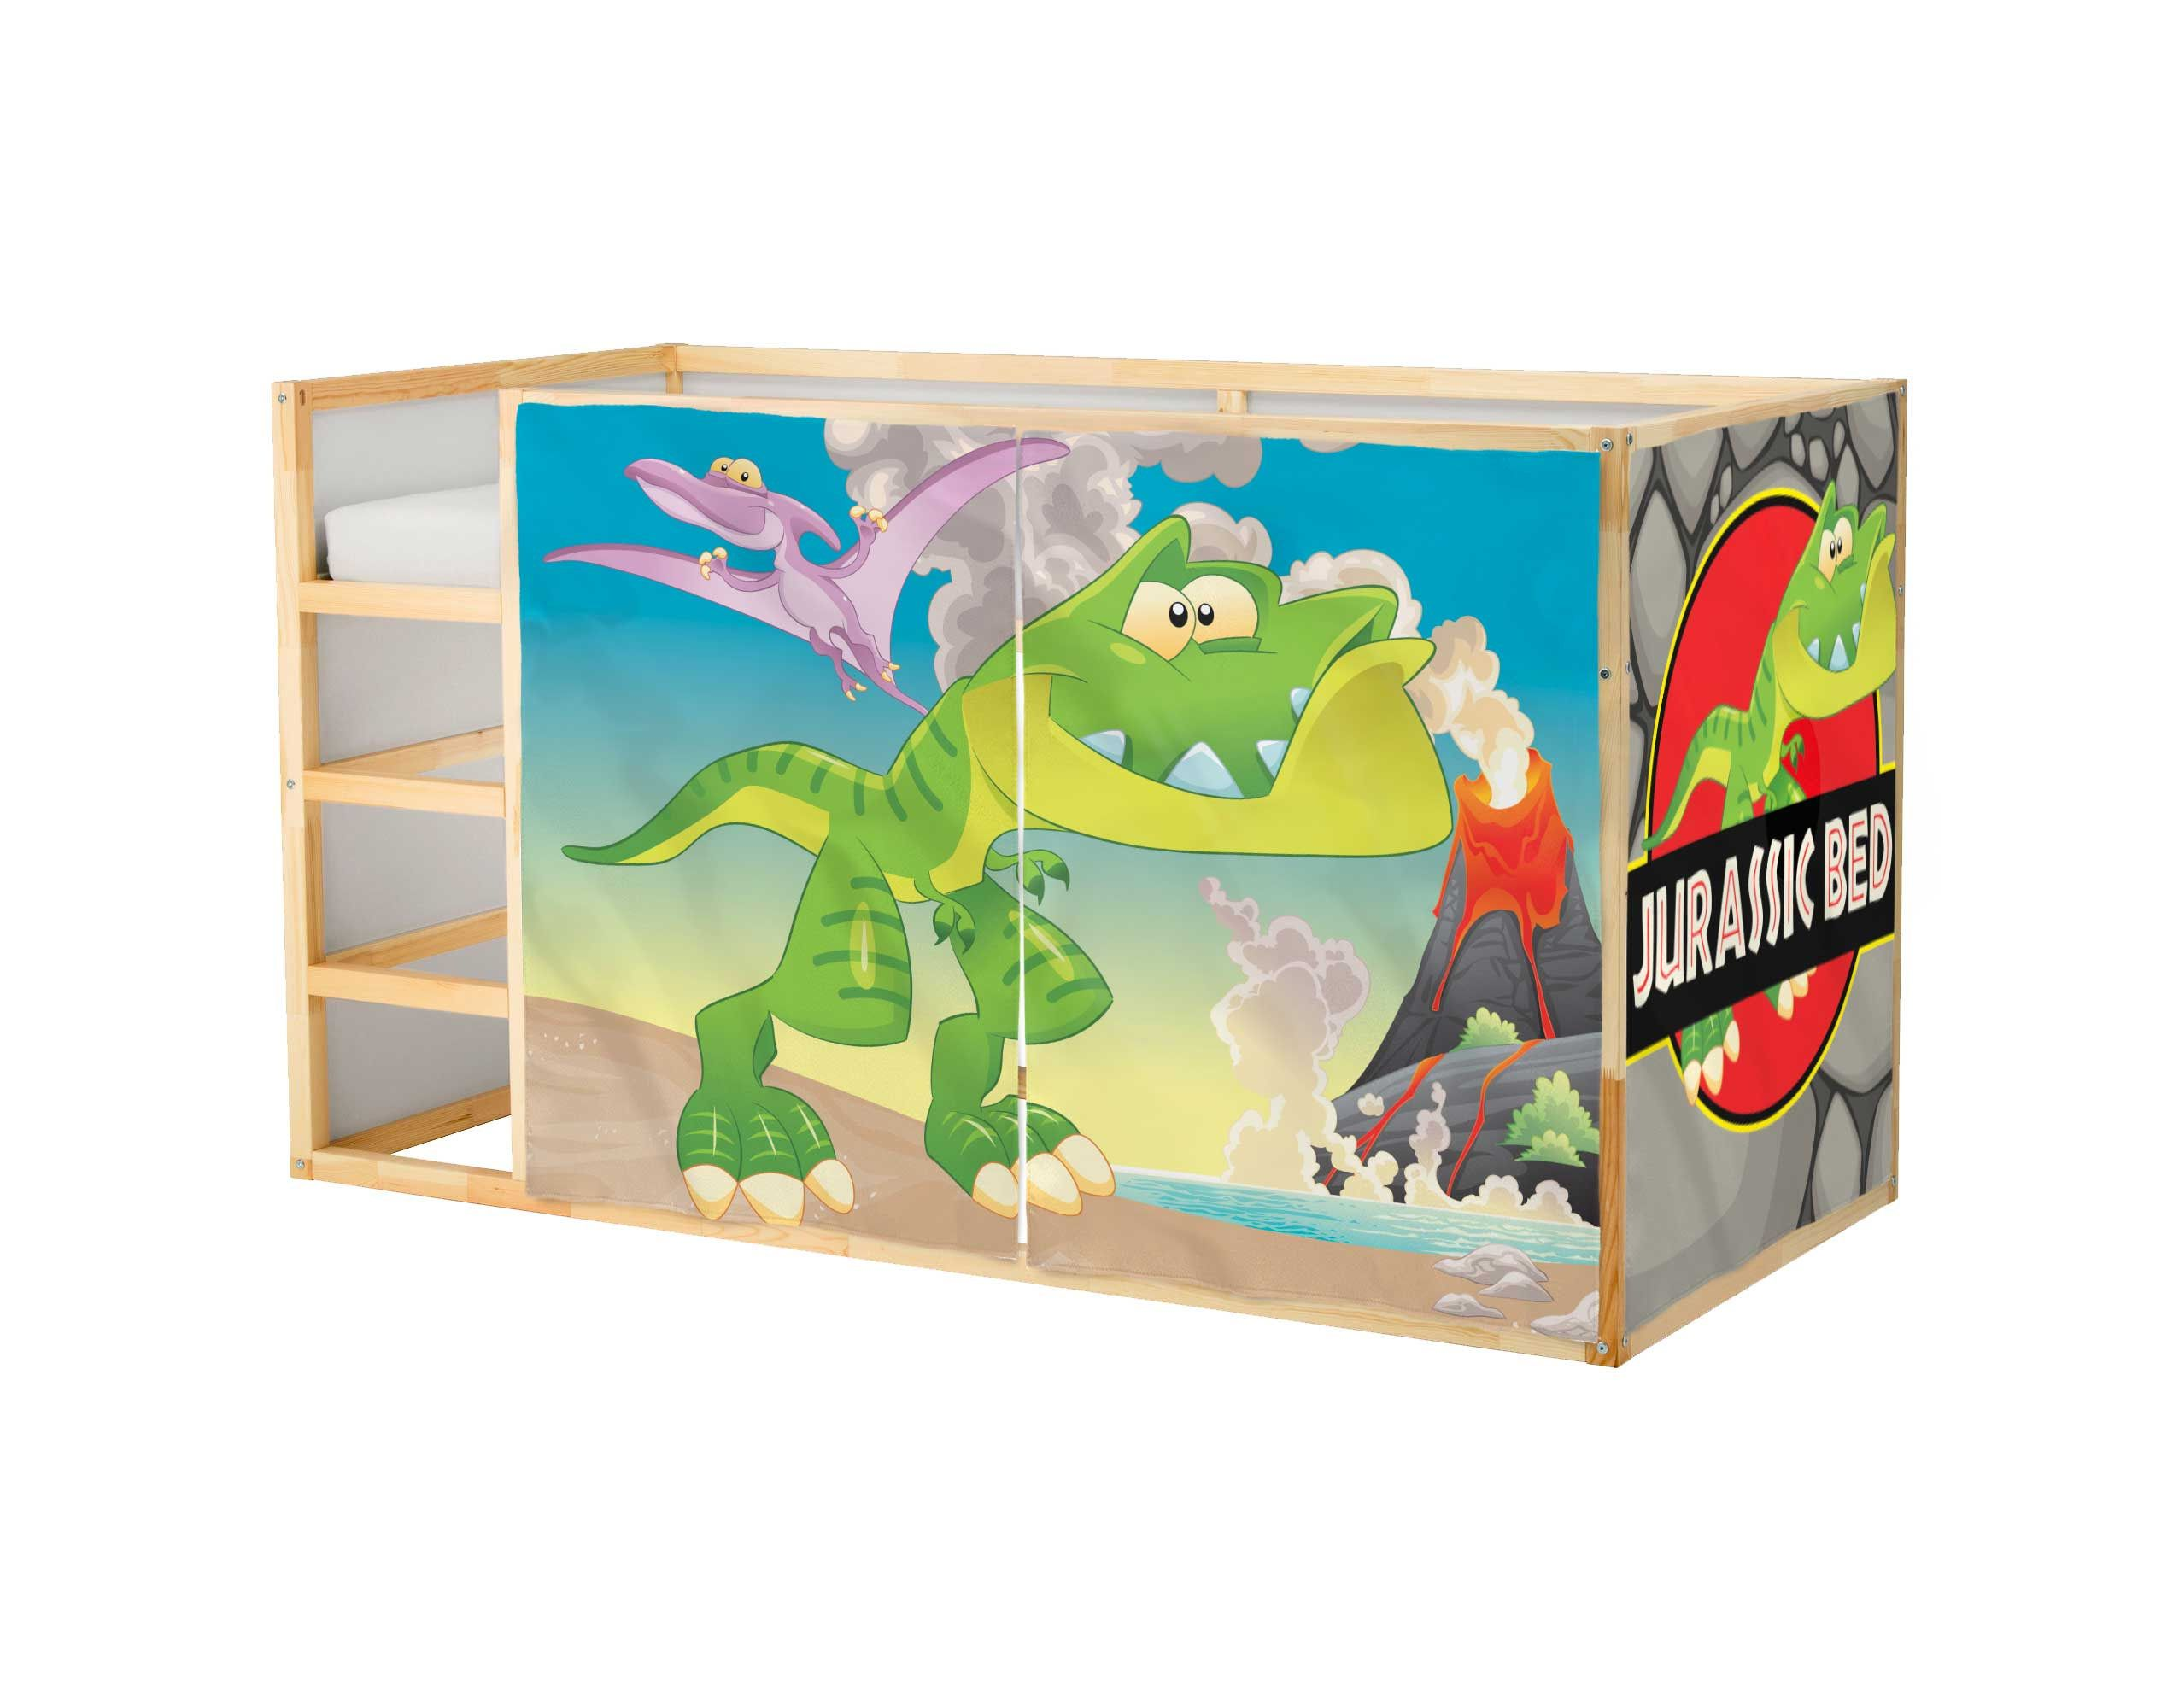 Kids Bed Accessories Playhouse For Ikea Kura Bed Dinosaur Playhouse Curtains